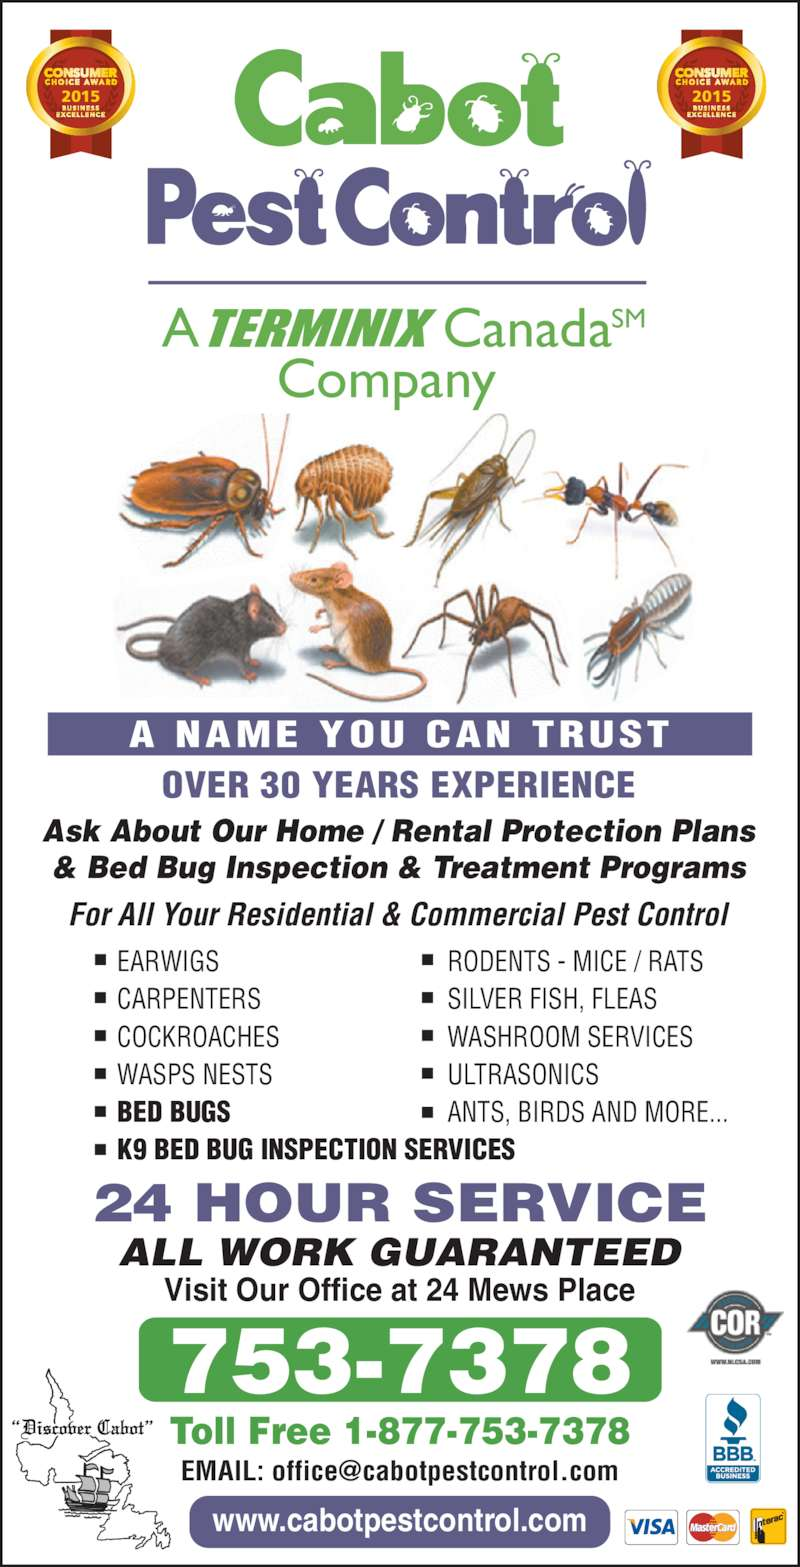 Cabot Pest Control (709-753-7378) - Display Ad - ALL WORK GUARANTEED www.cabotpestcontrol.com Visit Our Office at 24 Mews Place 24 HOUR SERVICE For All Your Residential & Commercial Pest Control CARPENTERS COCKROACHES WASPS NESTS BED BUGS K9 BED BUG INSPECTION SERVICES RODENTS - MICE / RATS SILVER FISH, FLEAS WASHROOM SERVICES ULTRASONICS ANTS, BIRDS AND MORE... Toll Free 1-877-753-7378 A NAME YOU CAN TRUST Ask About Our Home / Rental Protection Plans & Bed Bug Inspection & Treatment Programs OVER 30 YEARS EXPERIENCE 753-7378 A CanadaSM Company A NAME Y  CAN TRUST EARWIGS 20152015